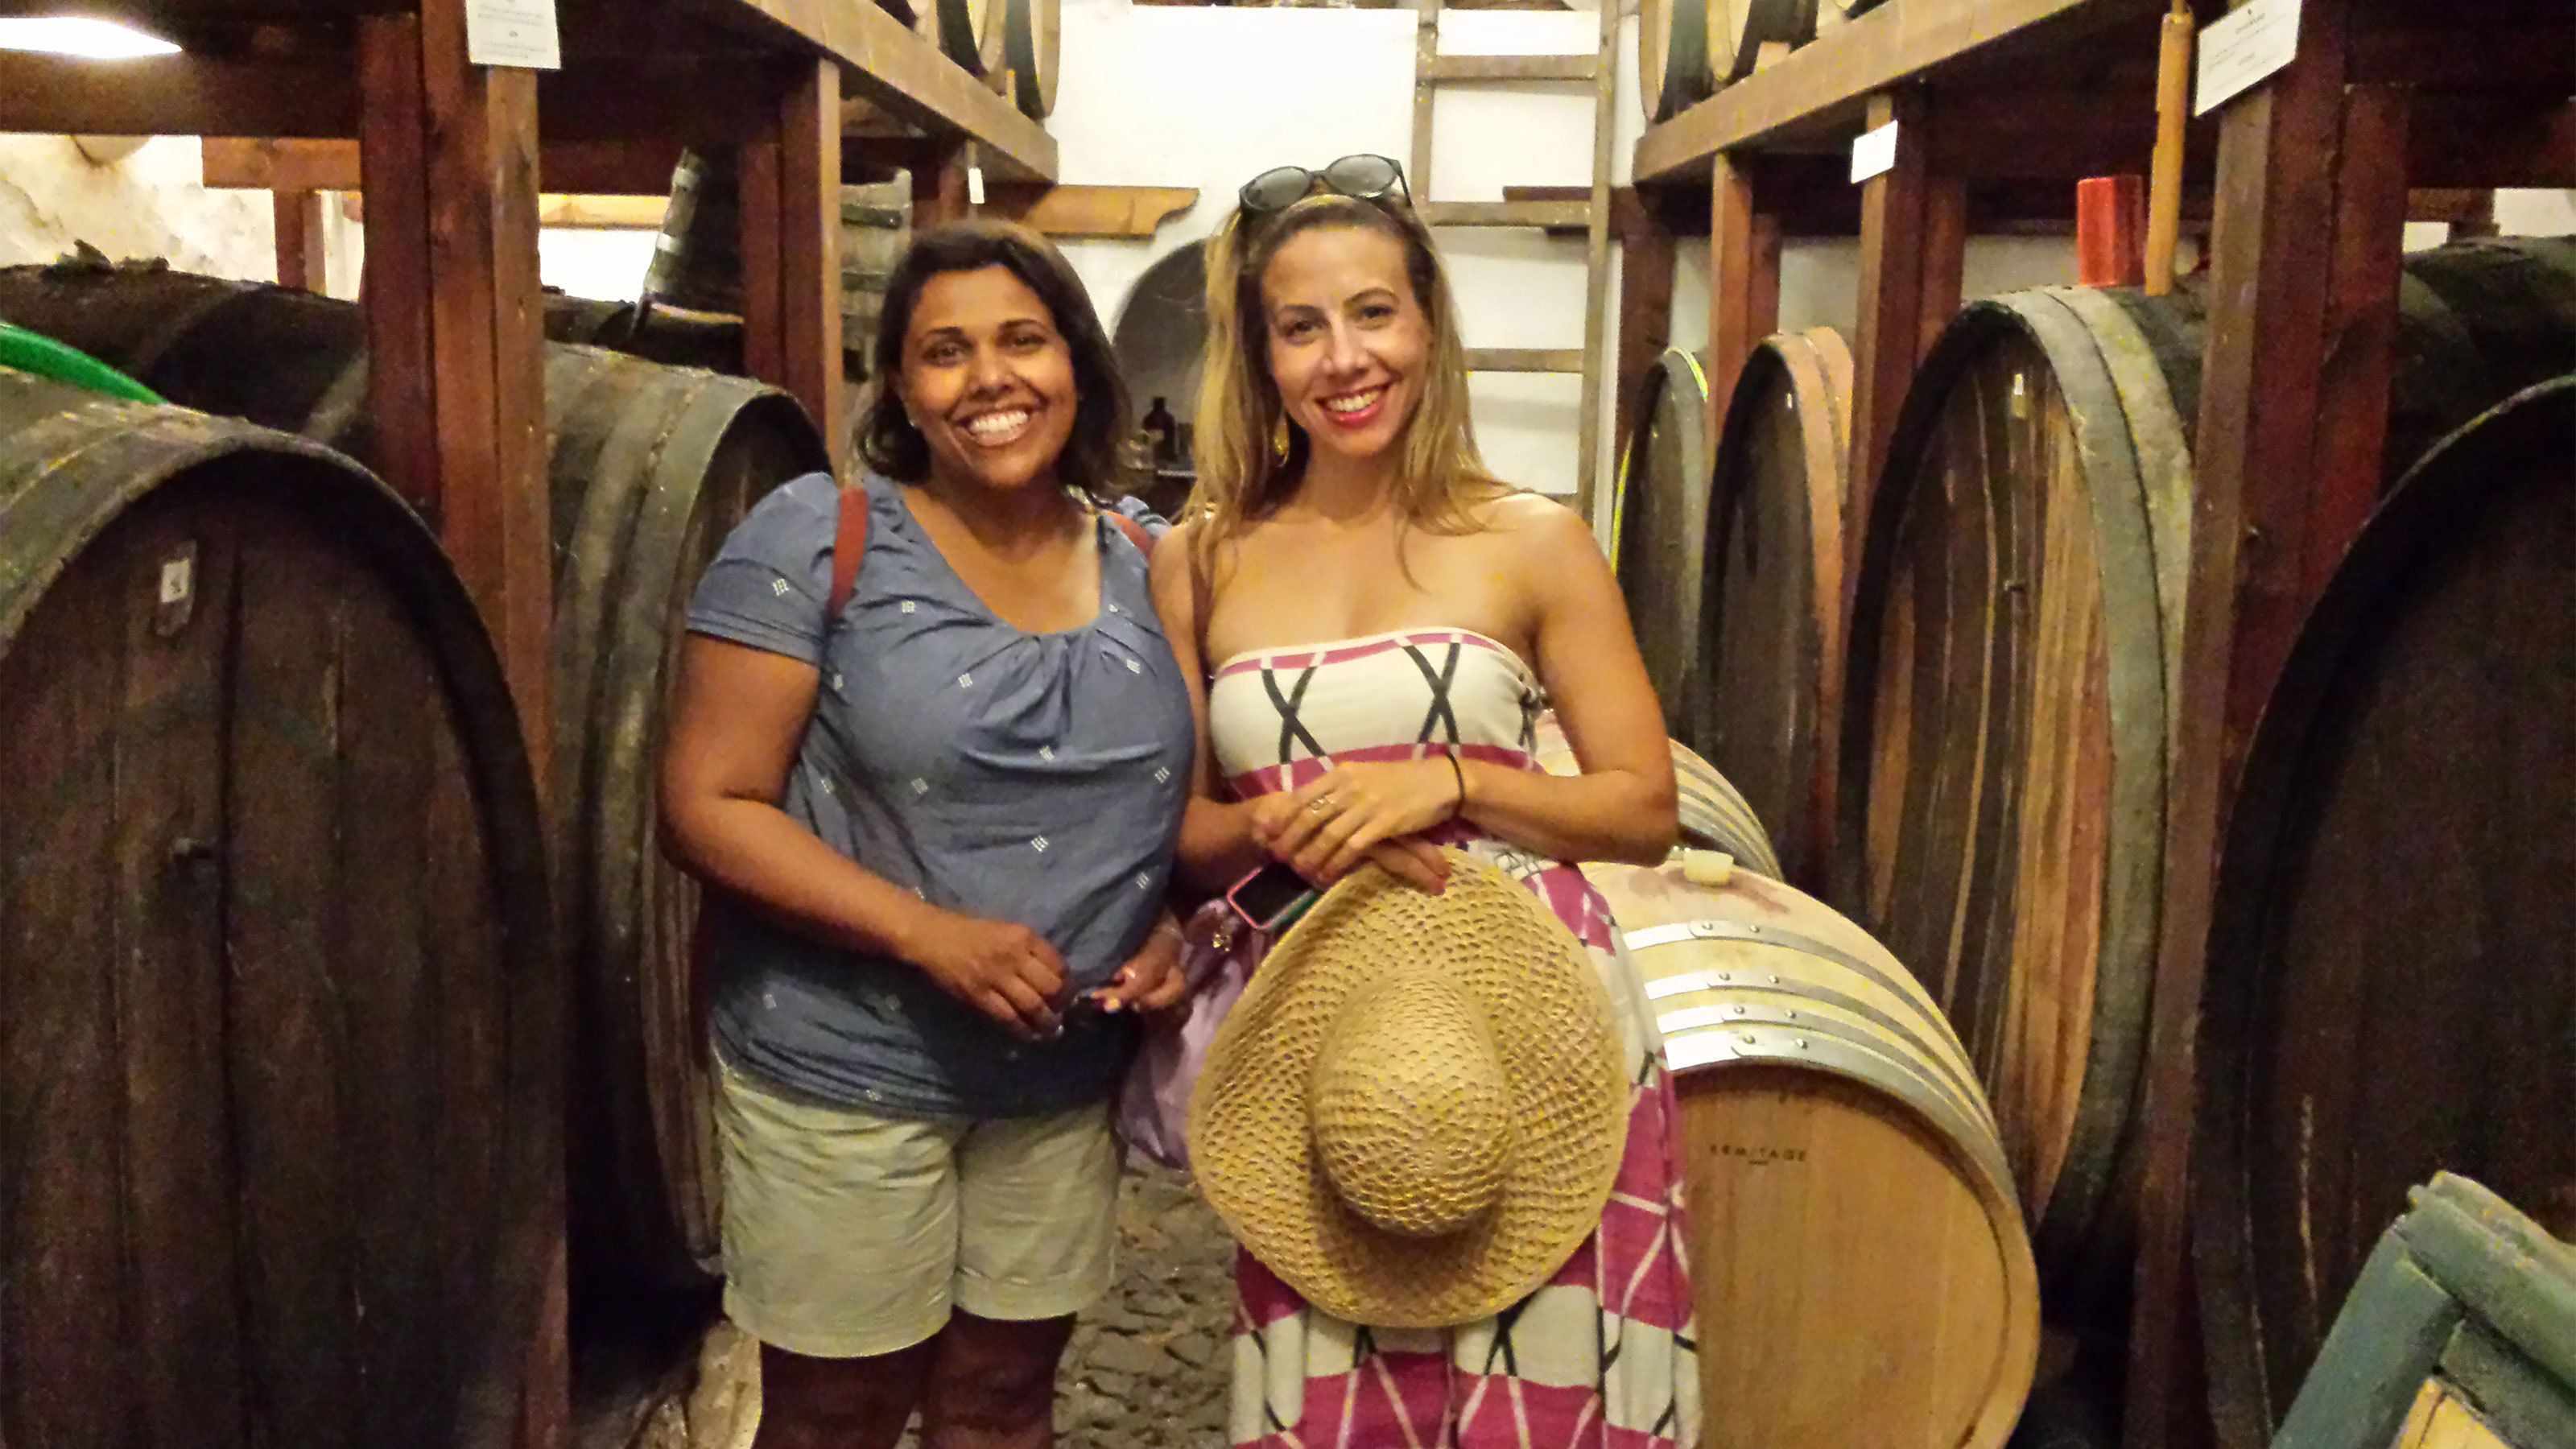 Two women standing at a wine cellar in Santorini